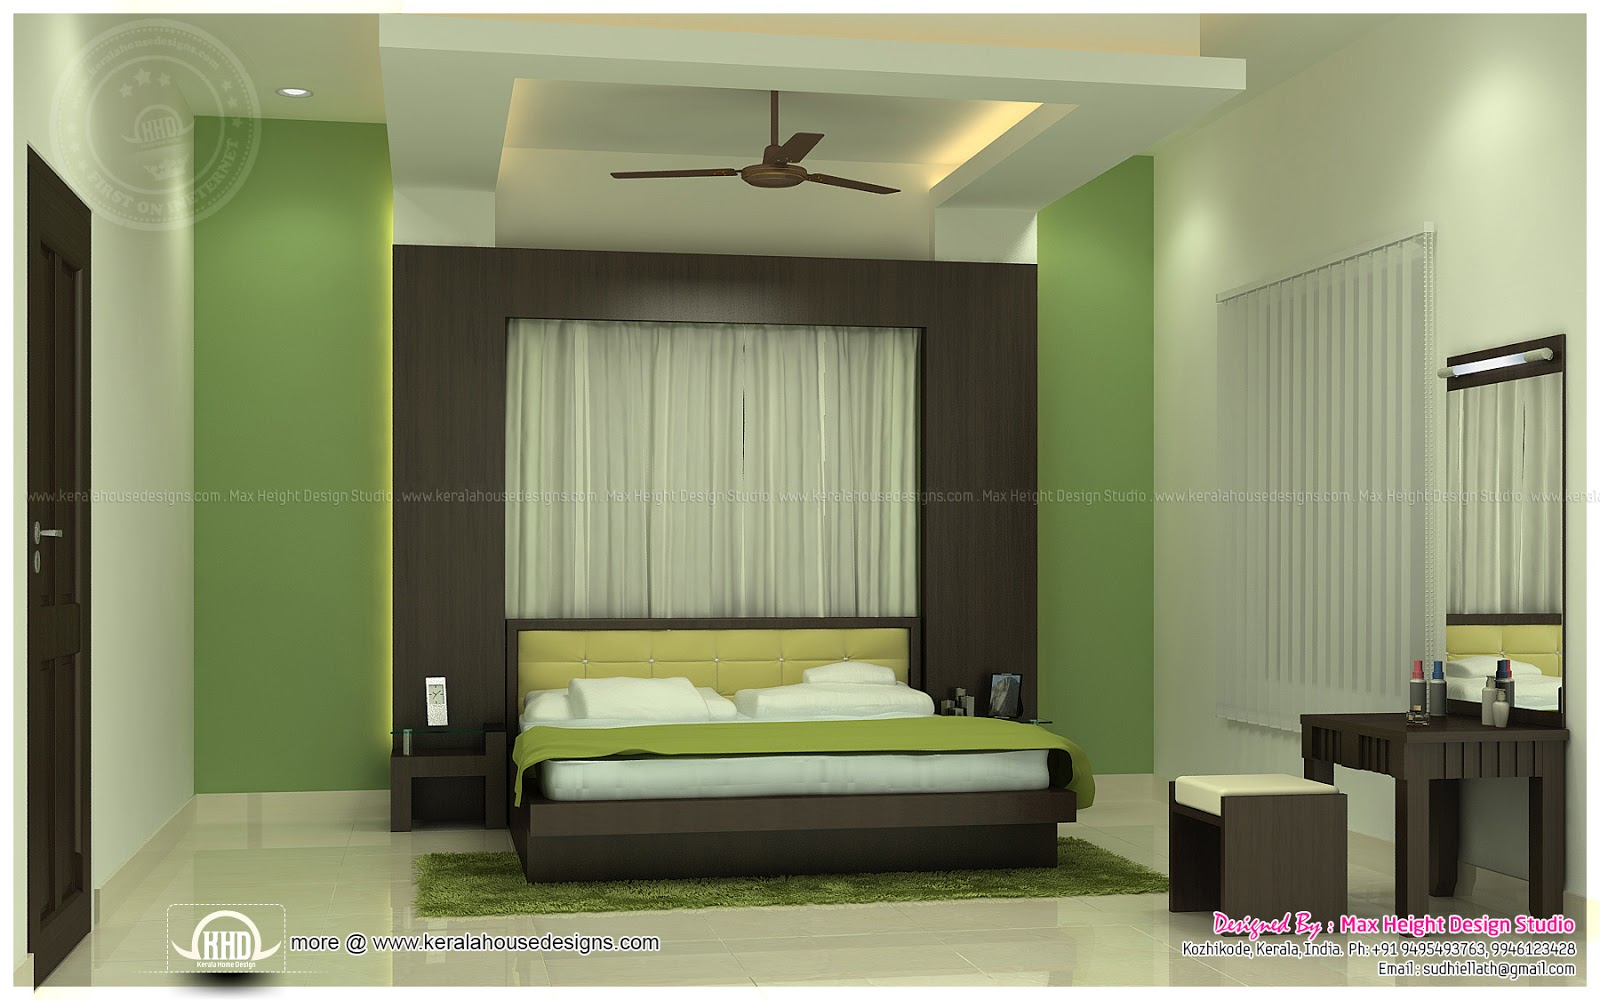 Interior design ideas indian house for Indian house interior design